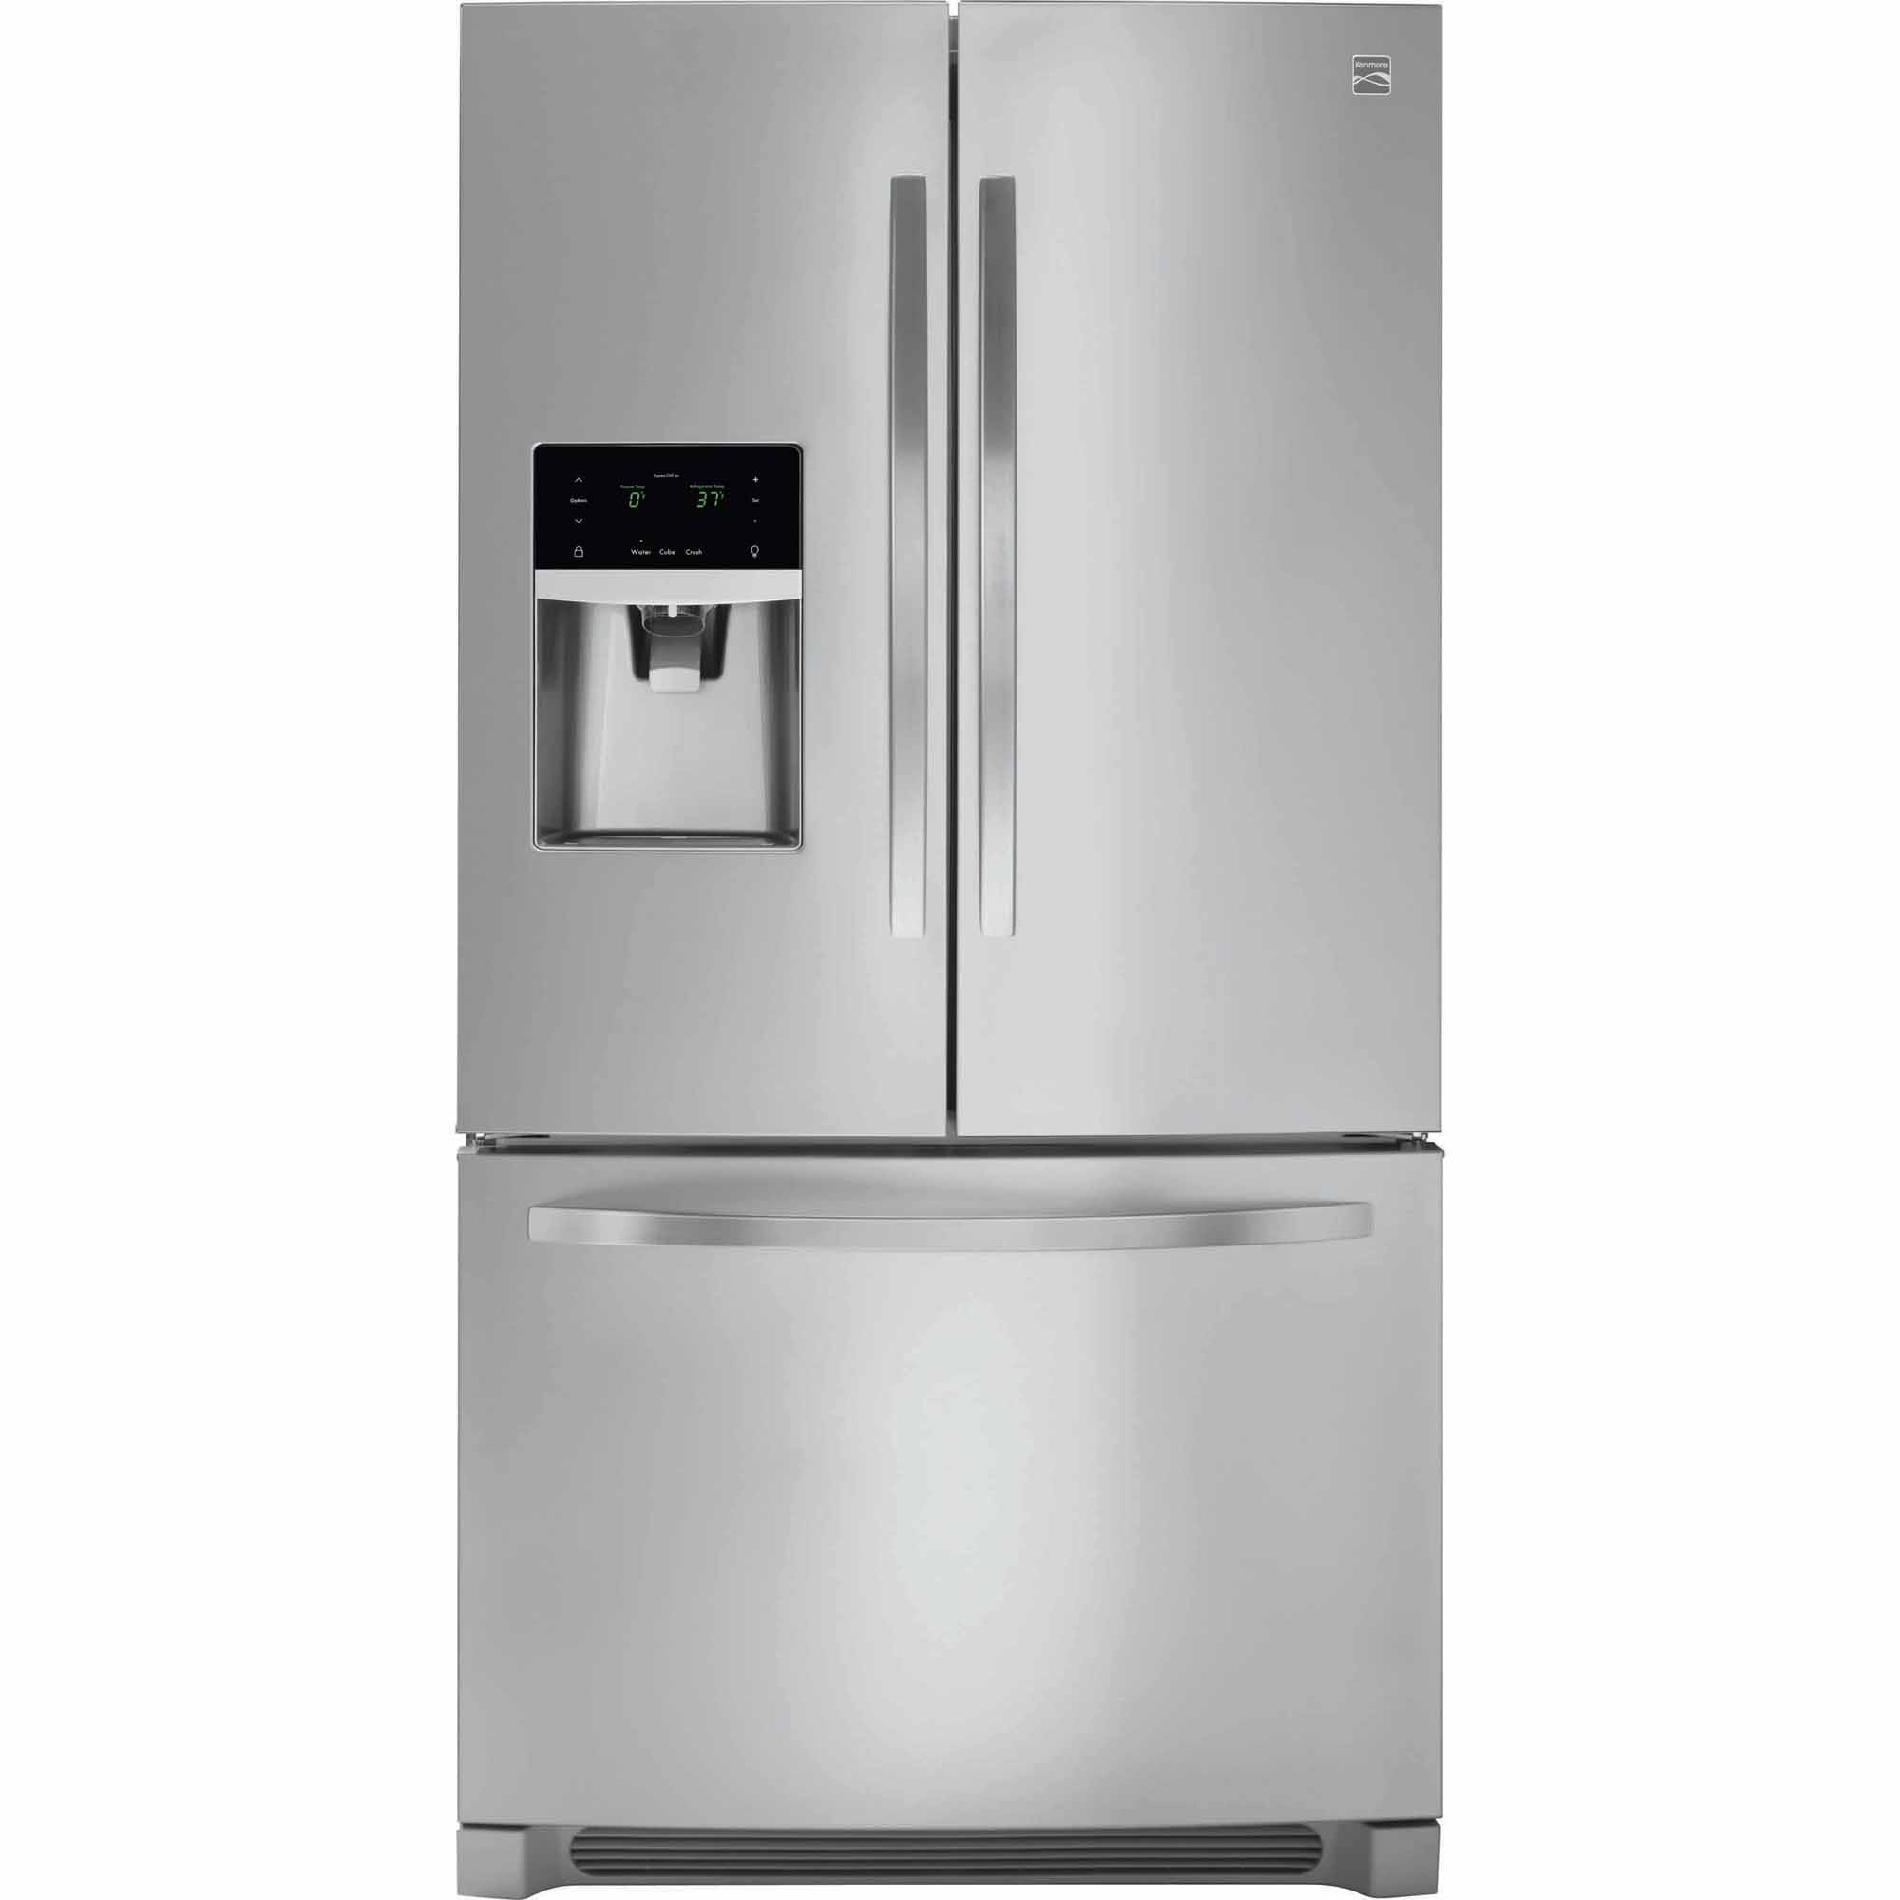 Kenmore 70443 21.9 cu. ft. French Door Refrigerator - Stainless Steel